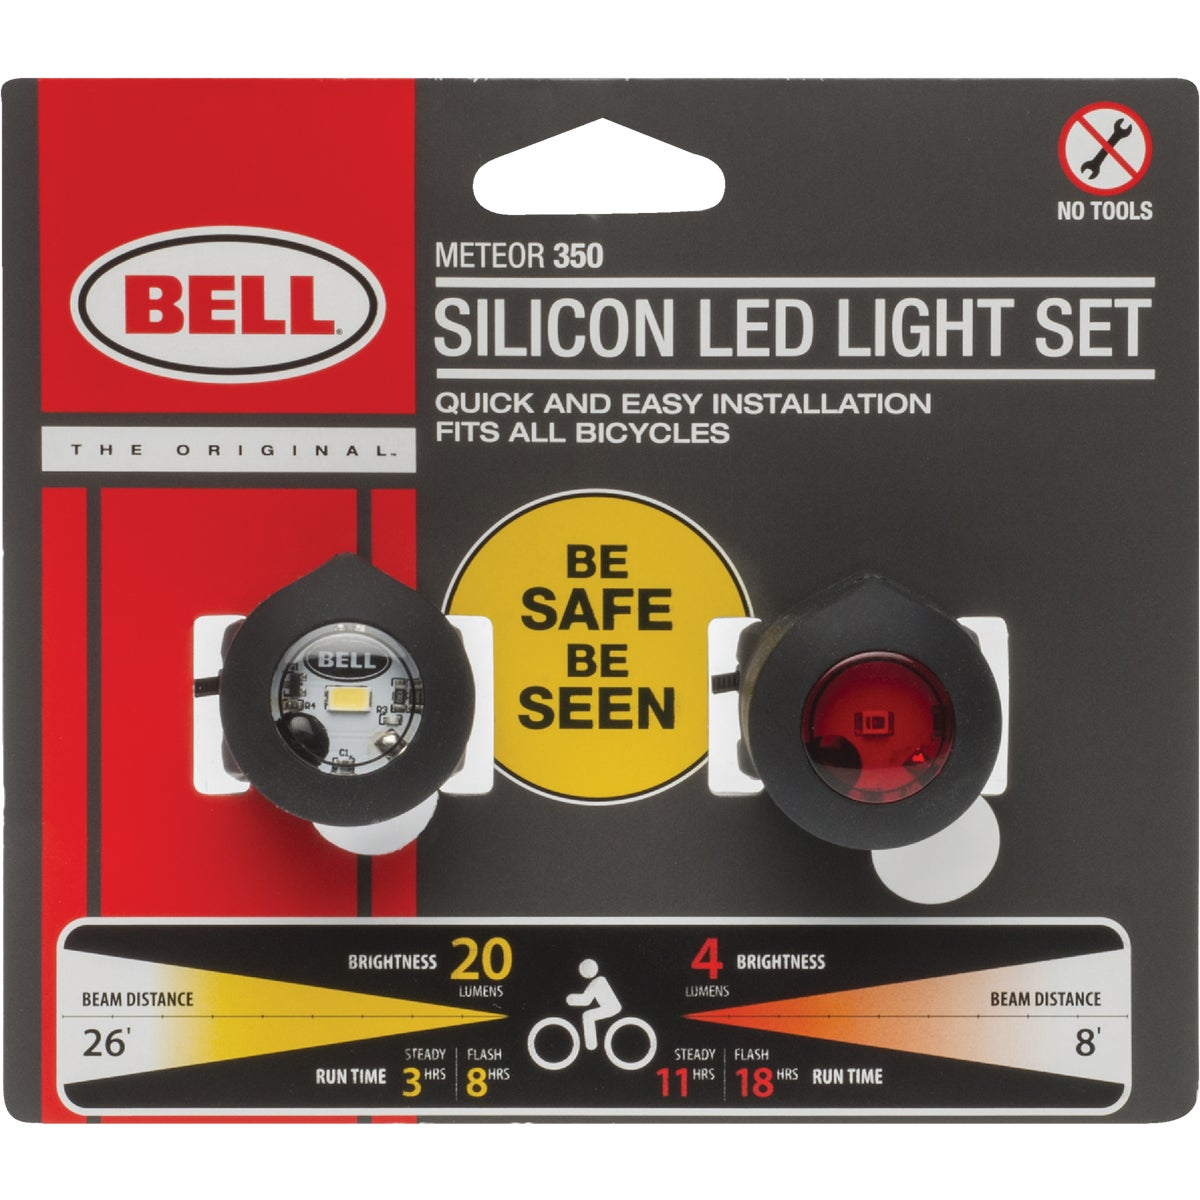 LED LIGHT SET - 7015569 by Bell Sports